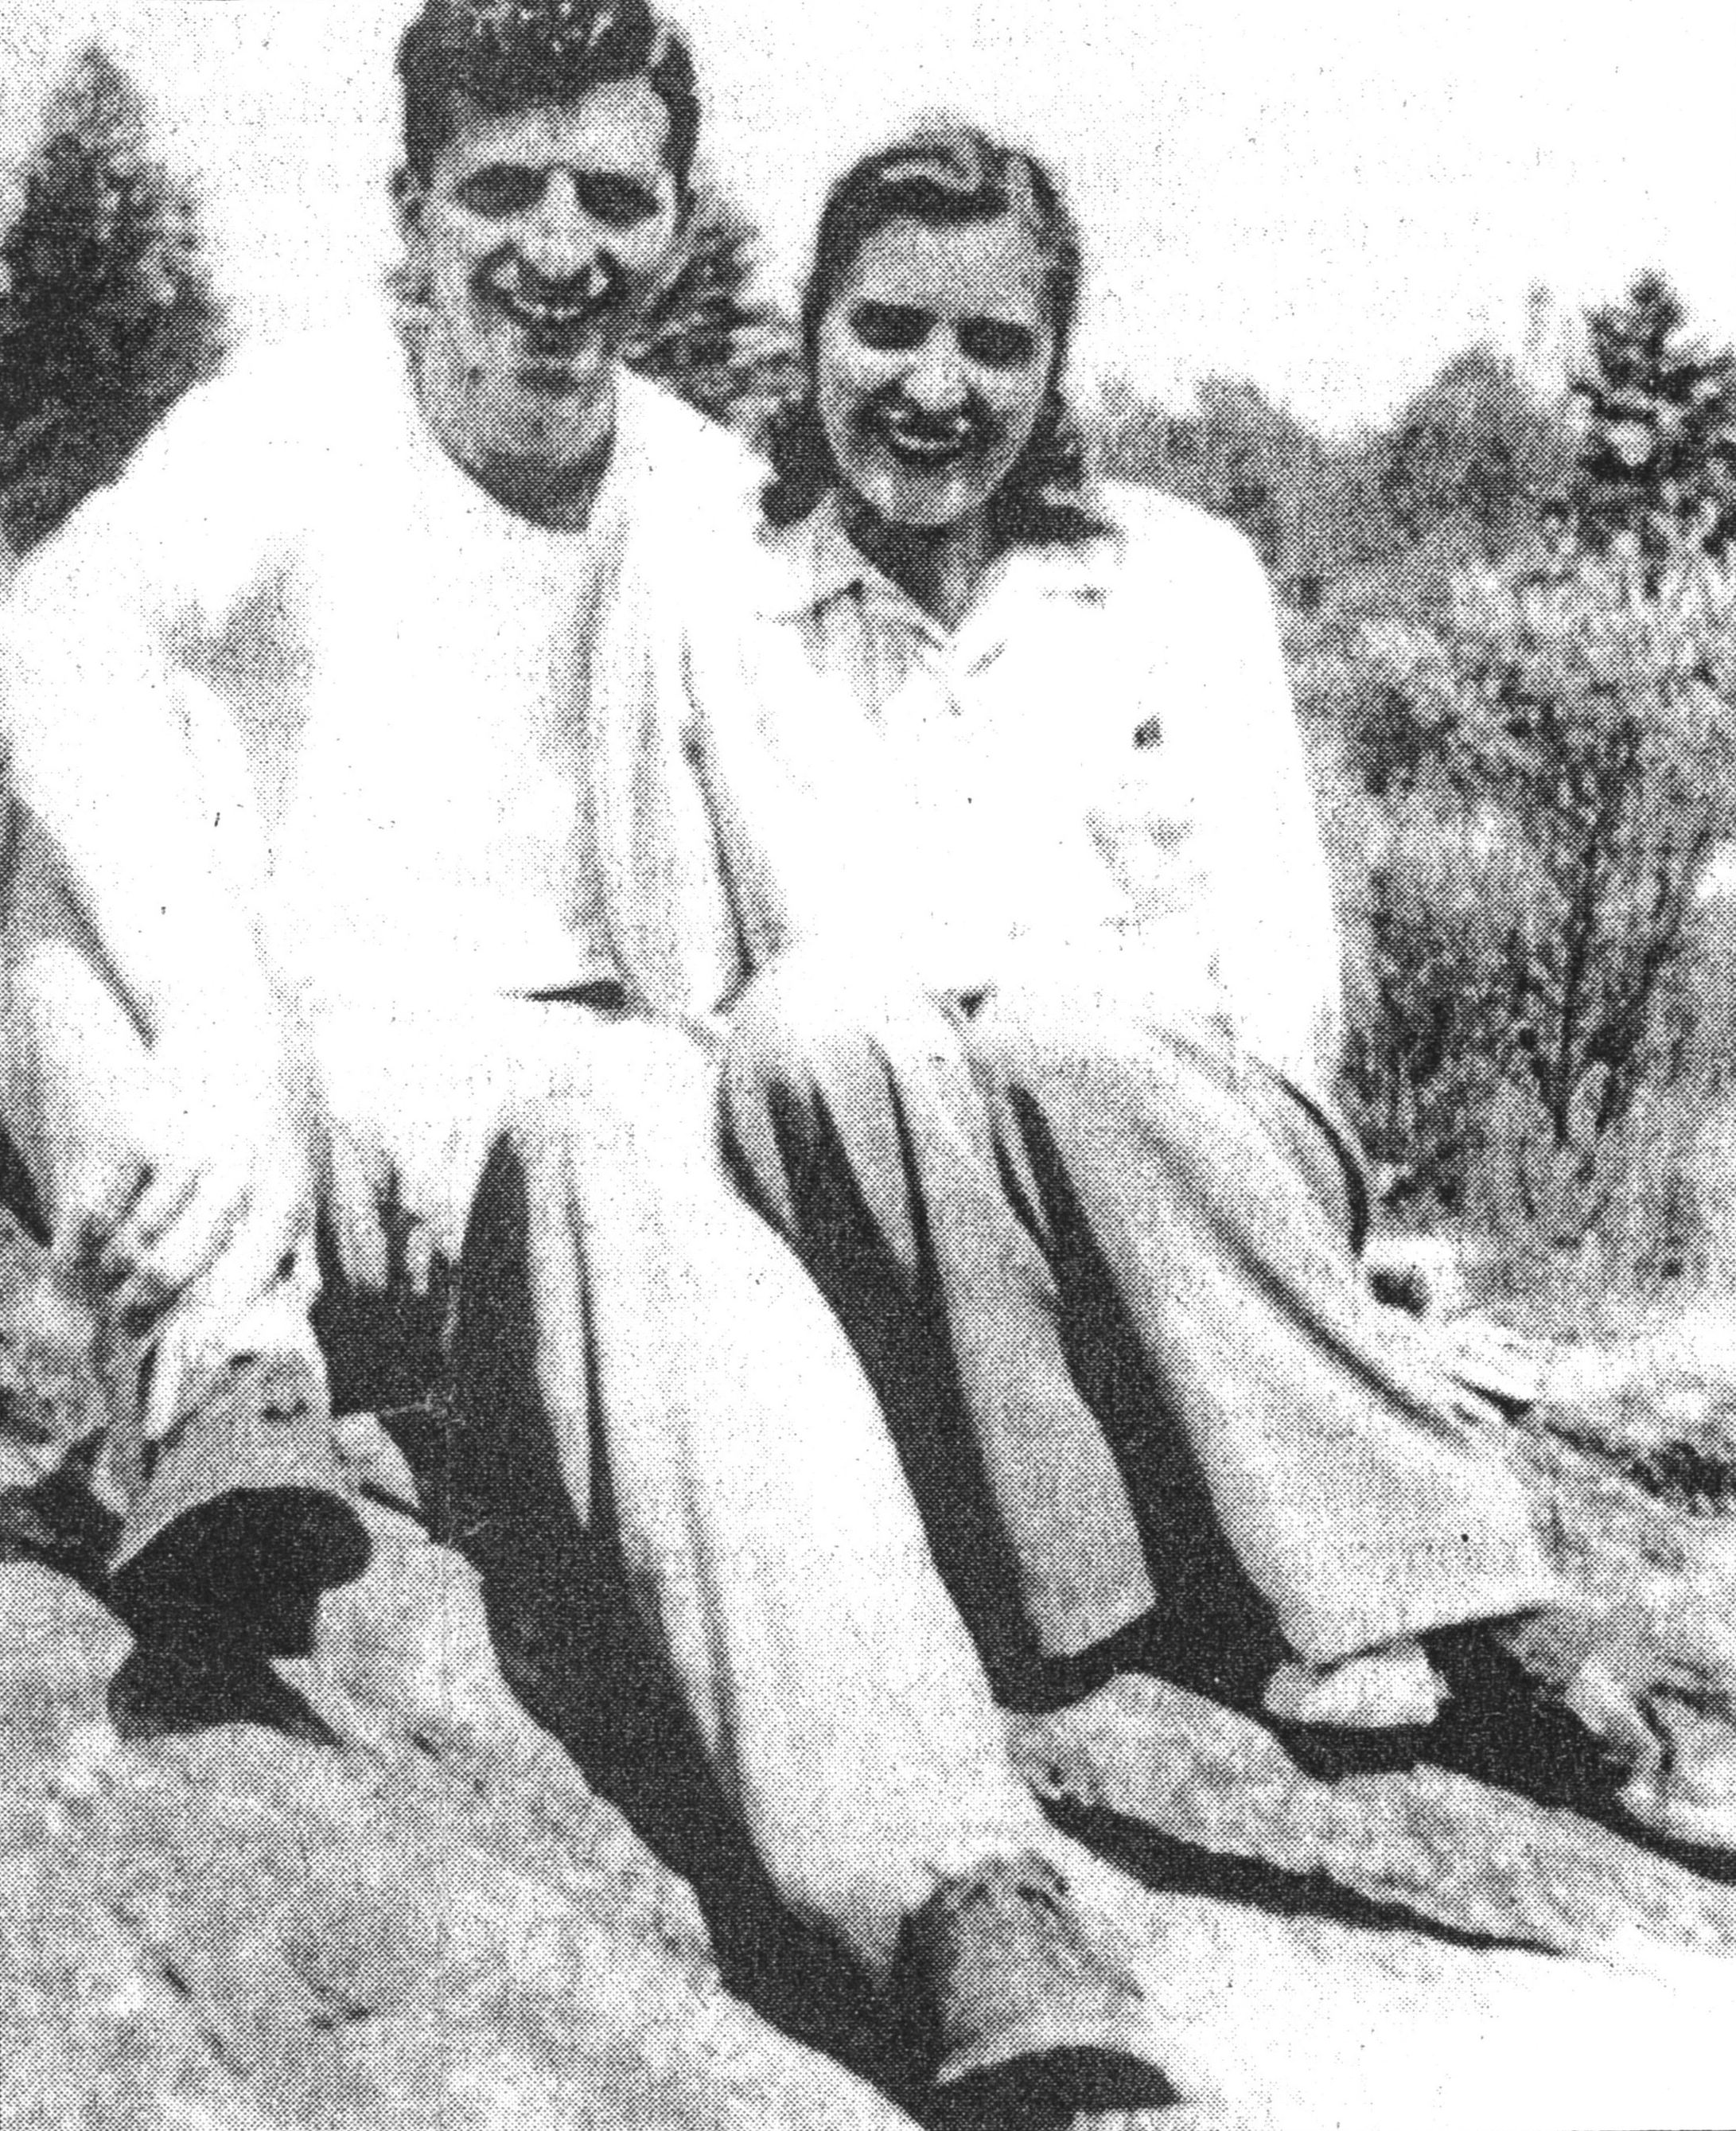 Bob Mercer and his wife Fran in 1946. Soon after graduating with a chemistry degree from the University of Manitoba, Mercer found himself a job at one of two explosives plants built in Nobel, on the shores of Georgian Bay and about 50 kilometres north of Parry Sound.